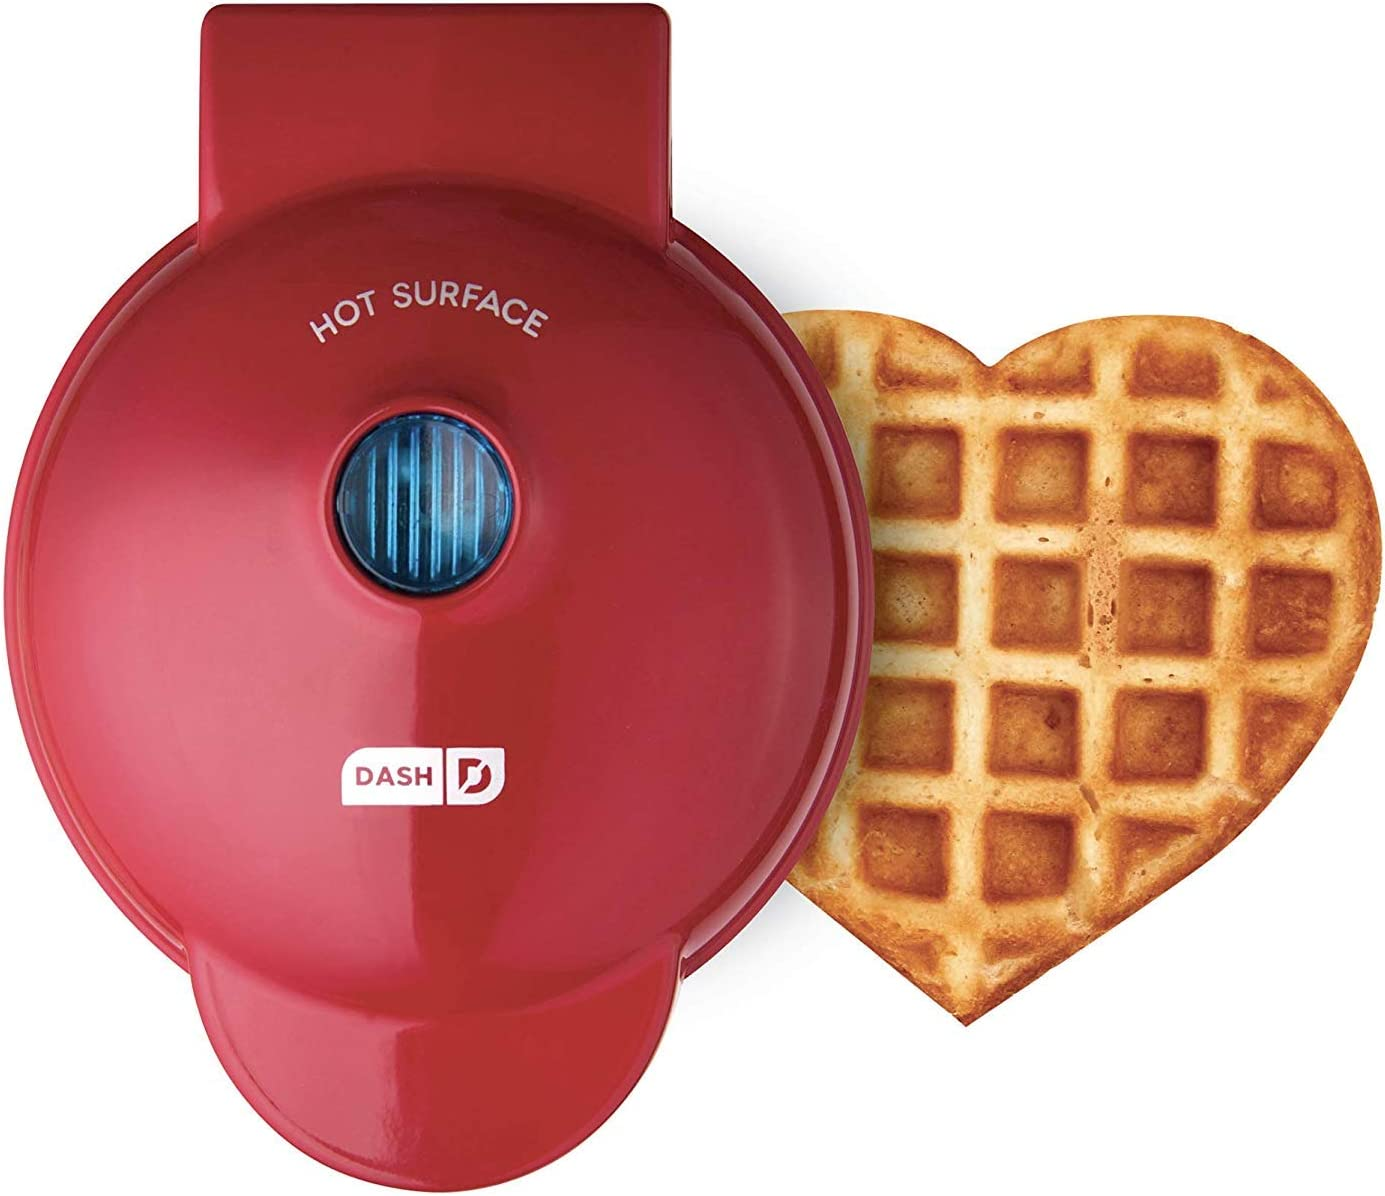 Dash DMW001HR Mini Maker Machine Shaped Individual Waffles, Other On The Go Breakfast, Lunch, or Snacks, Heart Red